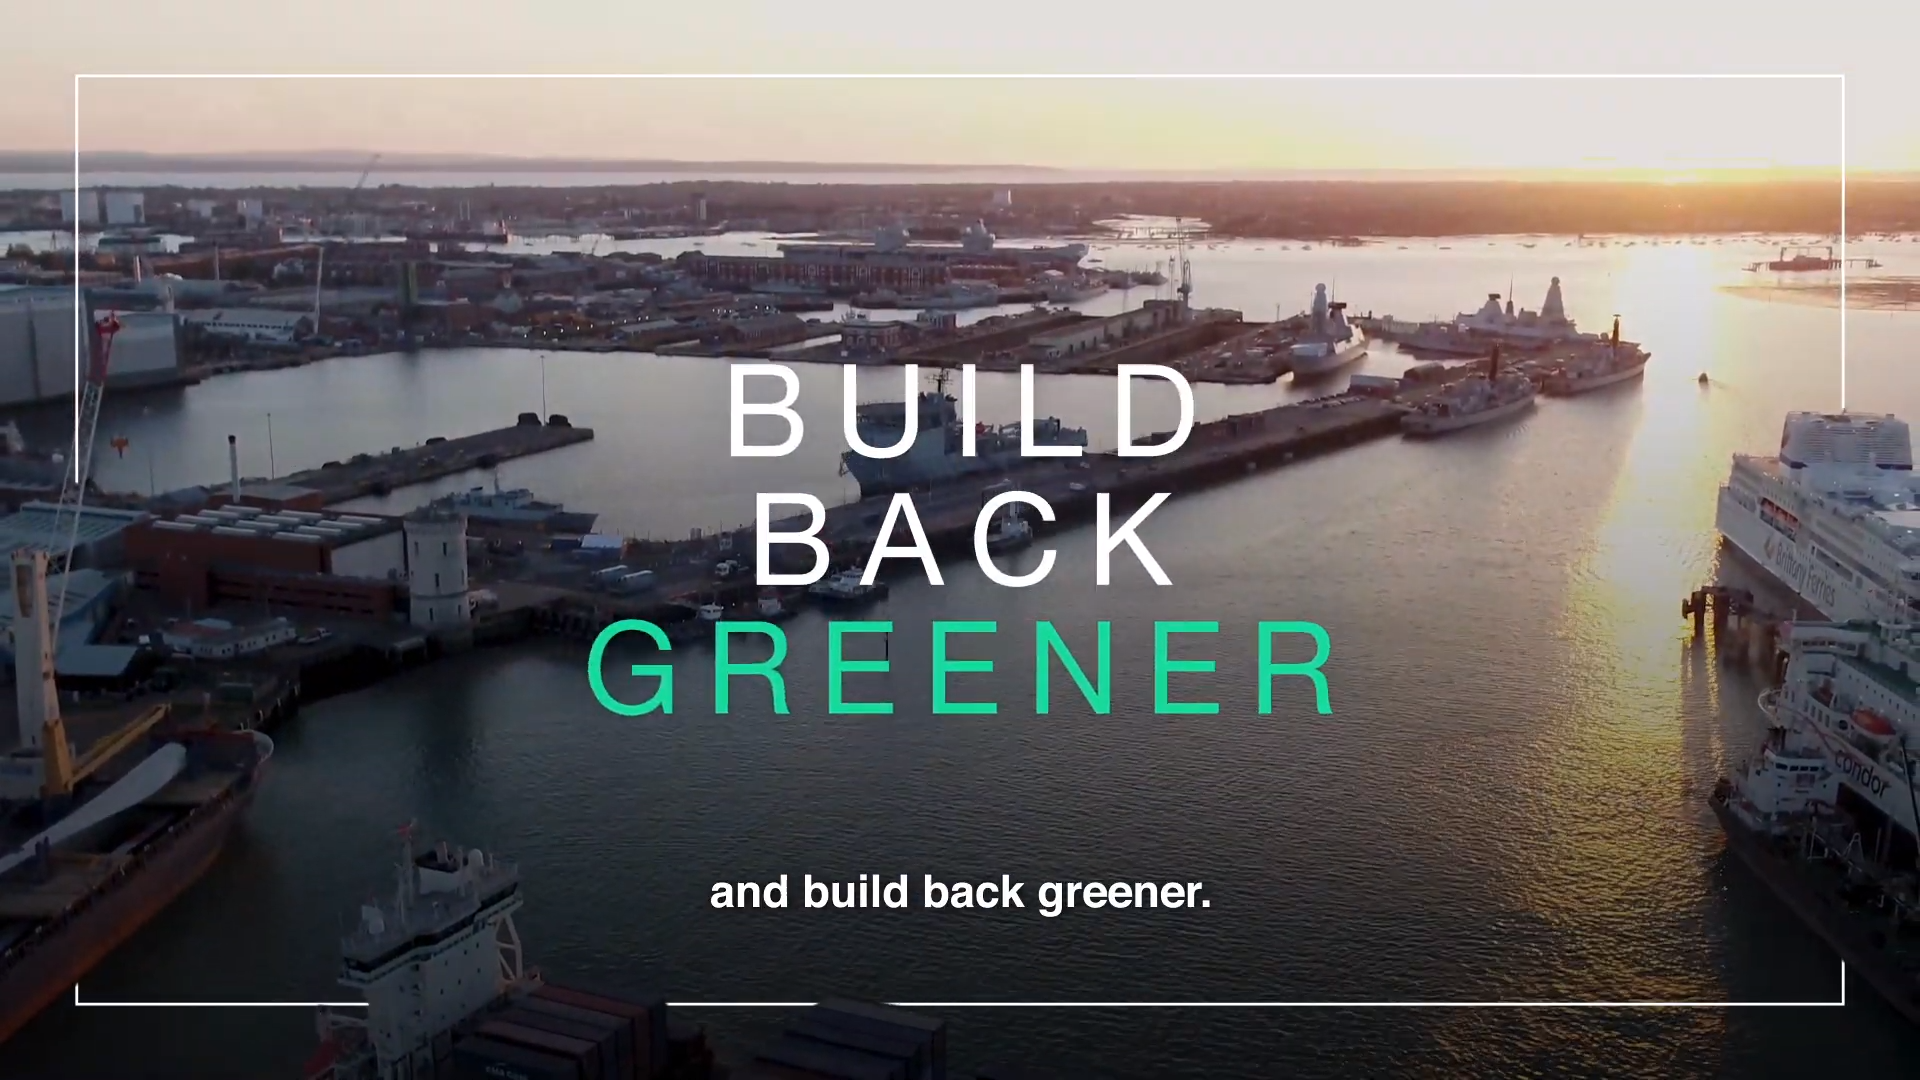 De competitie is onderdeel van de #BuildBackGreener campagne (Foto: Youtube / Department of Transport)